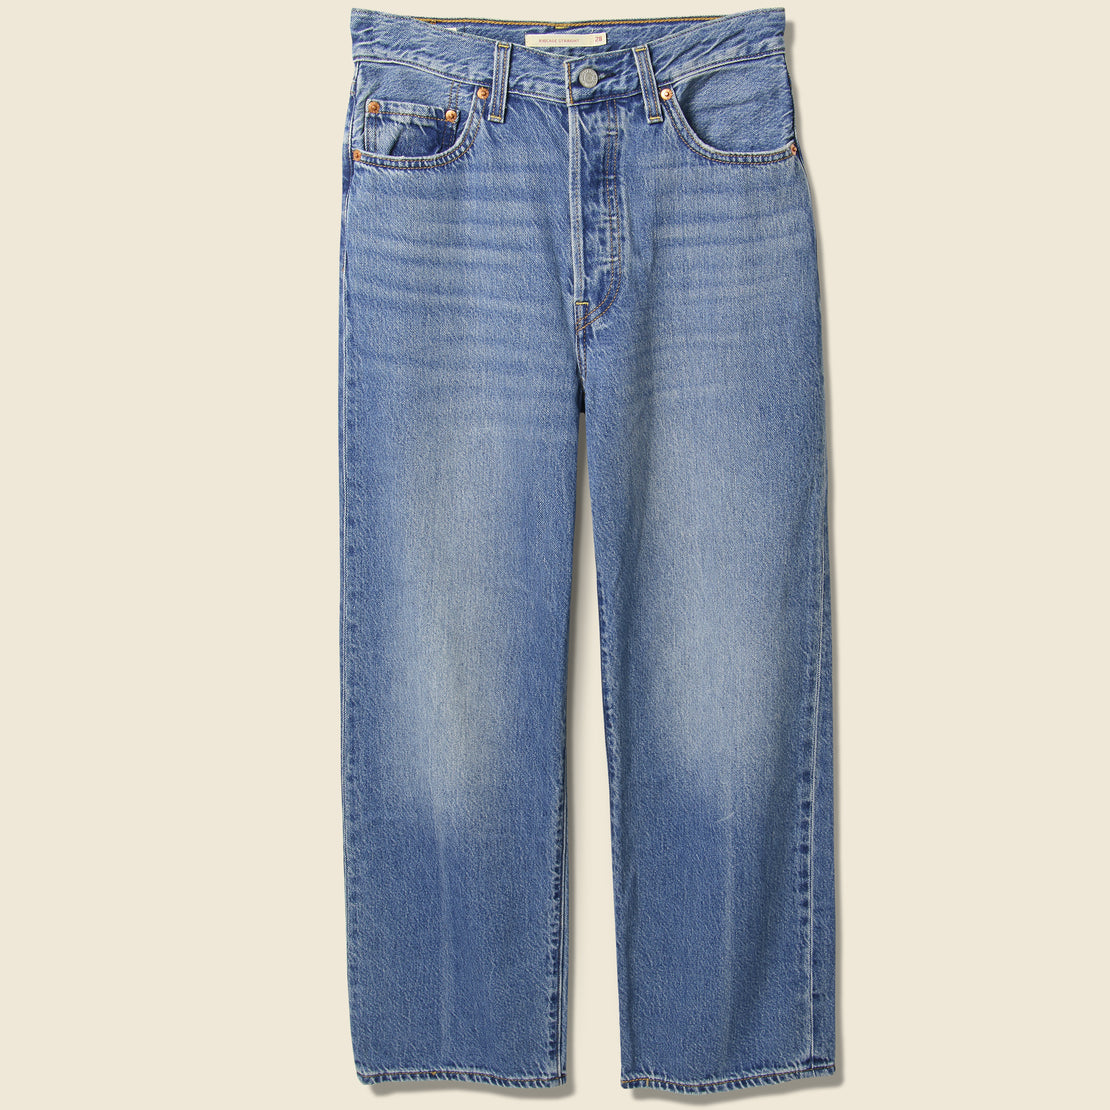 Levis Premium Ribcage Straight Ankle Jean - At The Ready